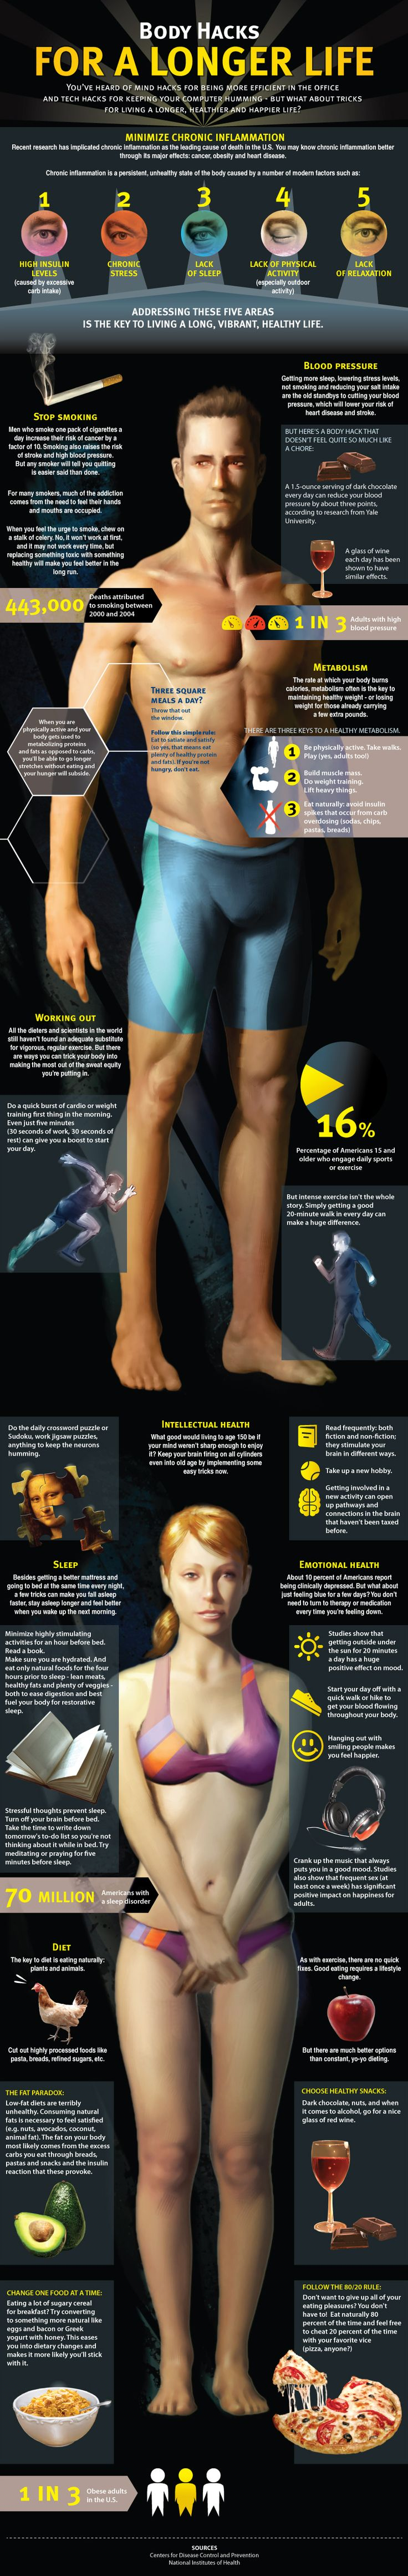 The Body Hacks For A Longer Life infographic will help you slow down the aging process & also help minimize your chances of dying from preventable diseases